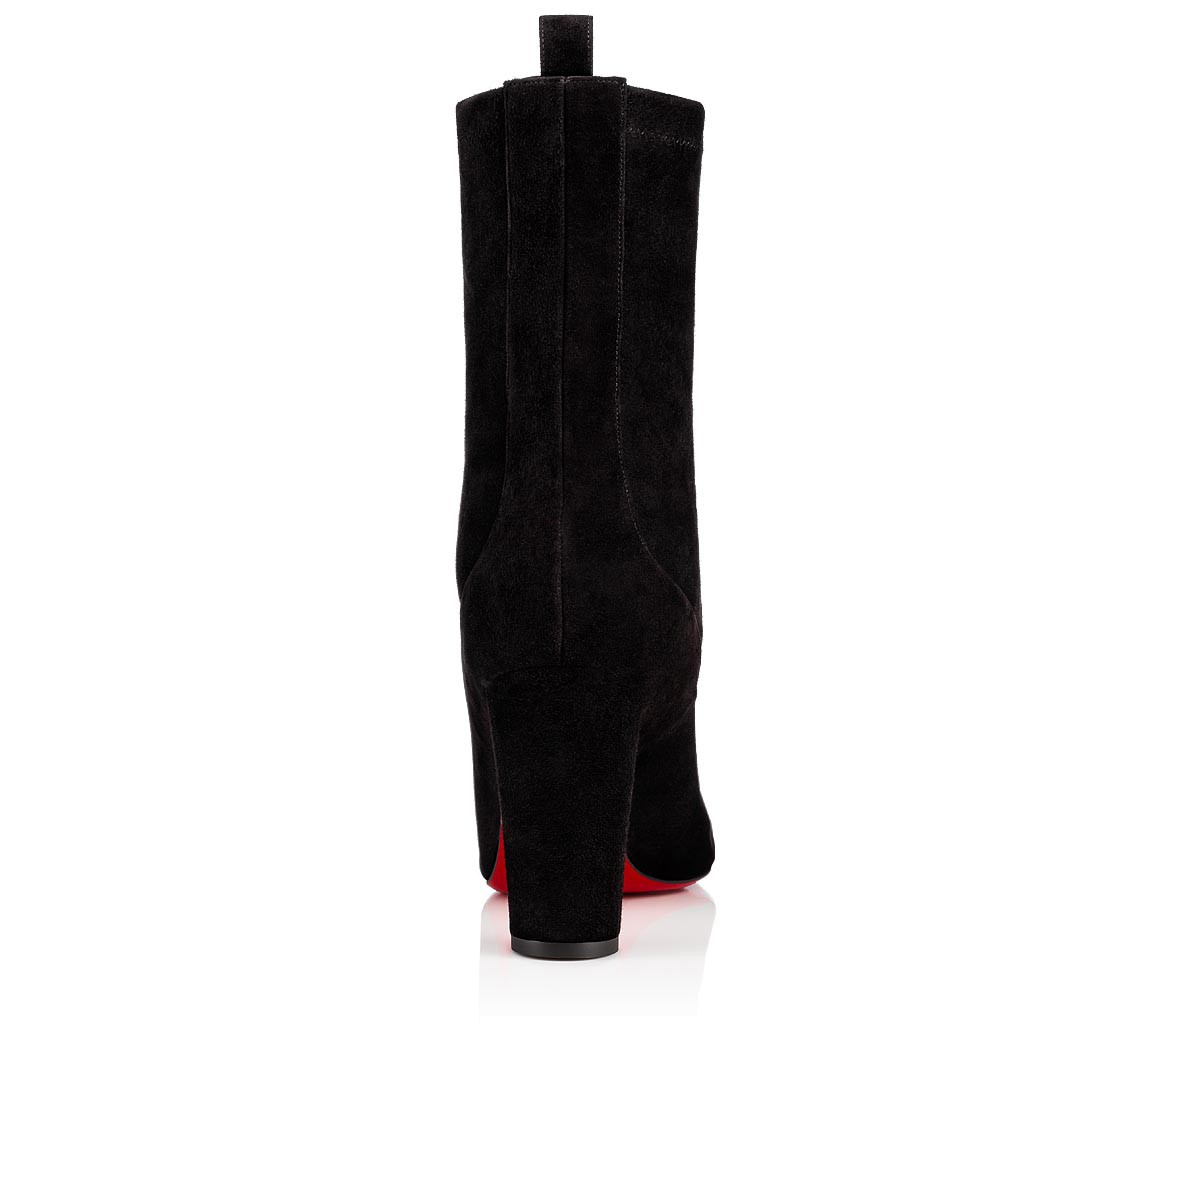 size 40 56d30 9825c Gena Bootie 85 Black Suede - Women Shoes - Christian Louboutin